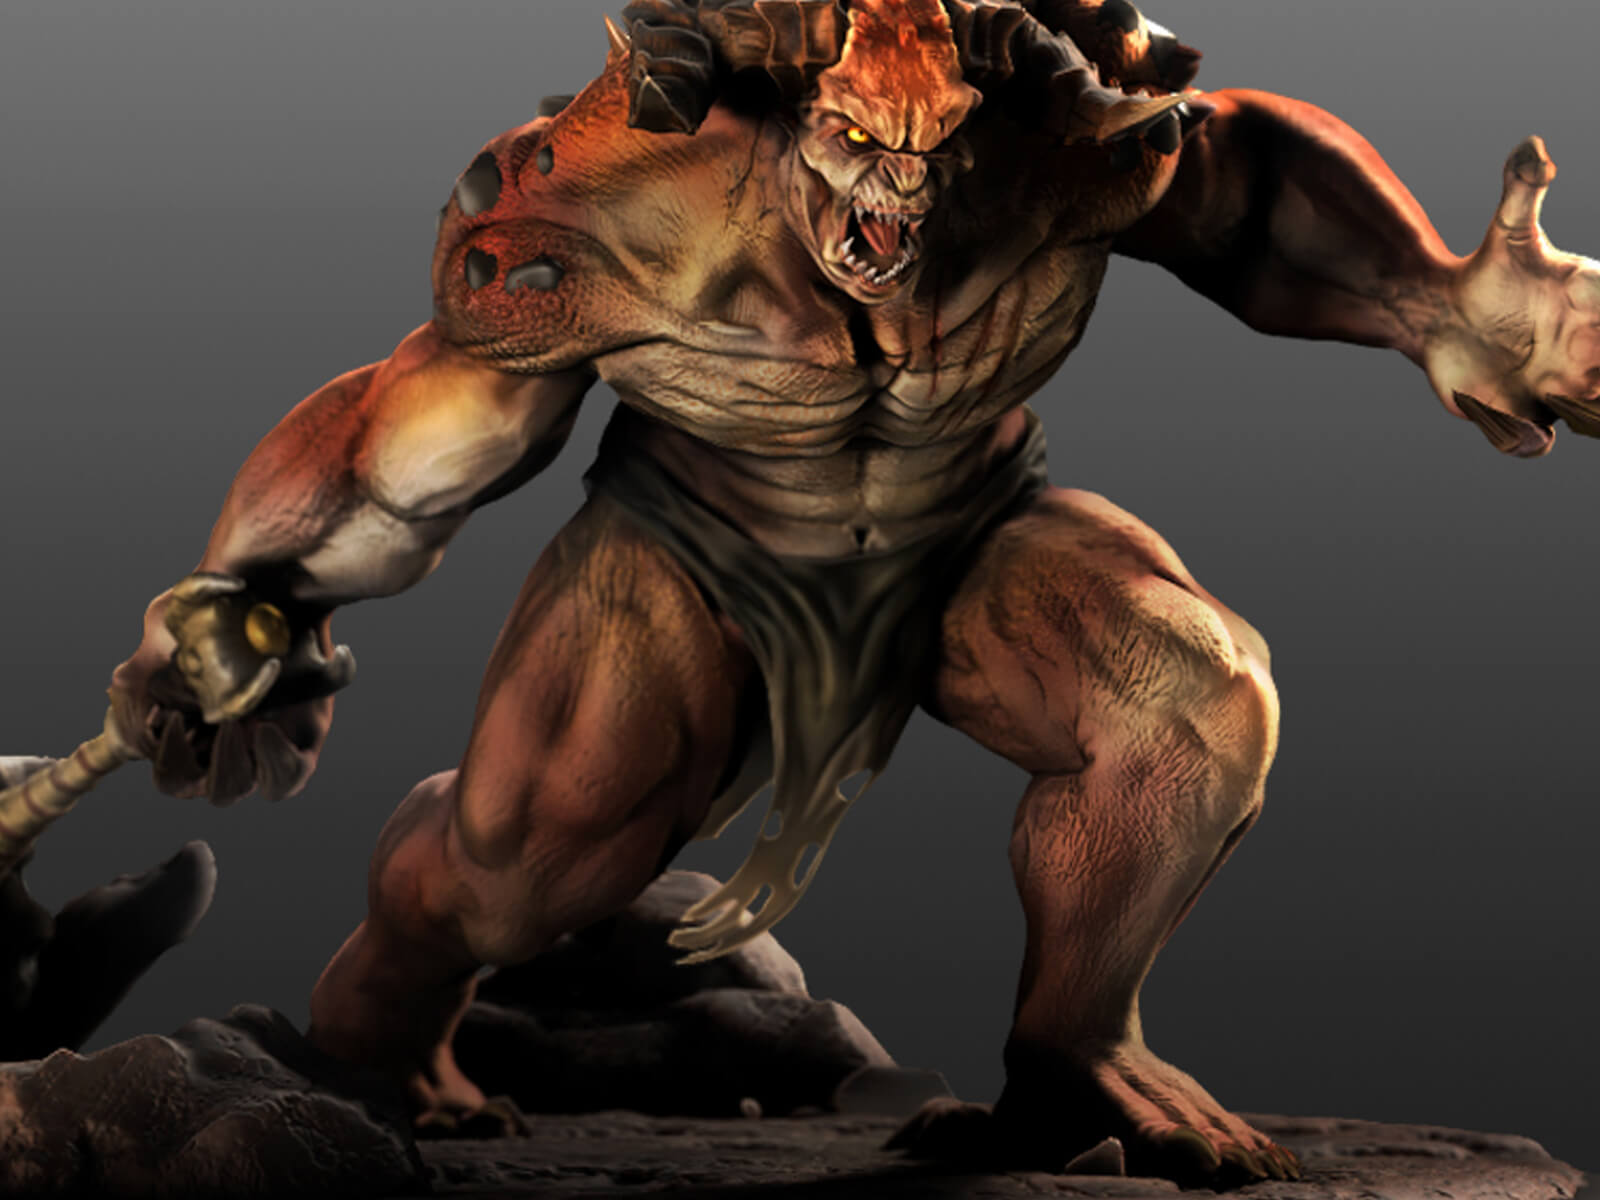 3D model of a giant ogre character